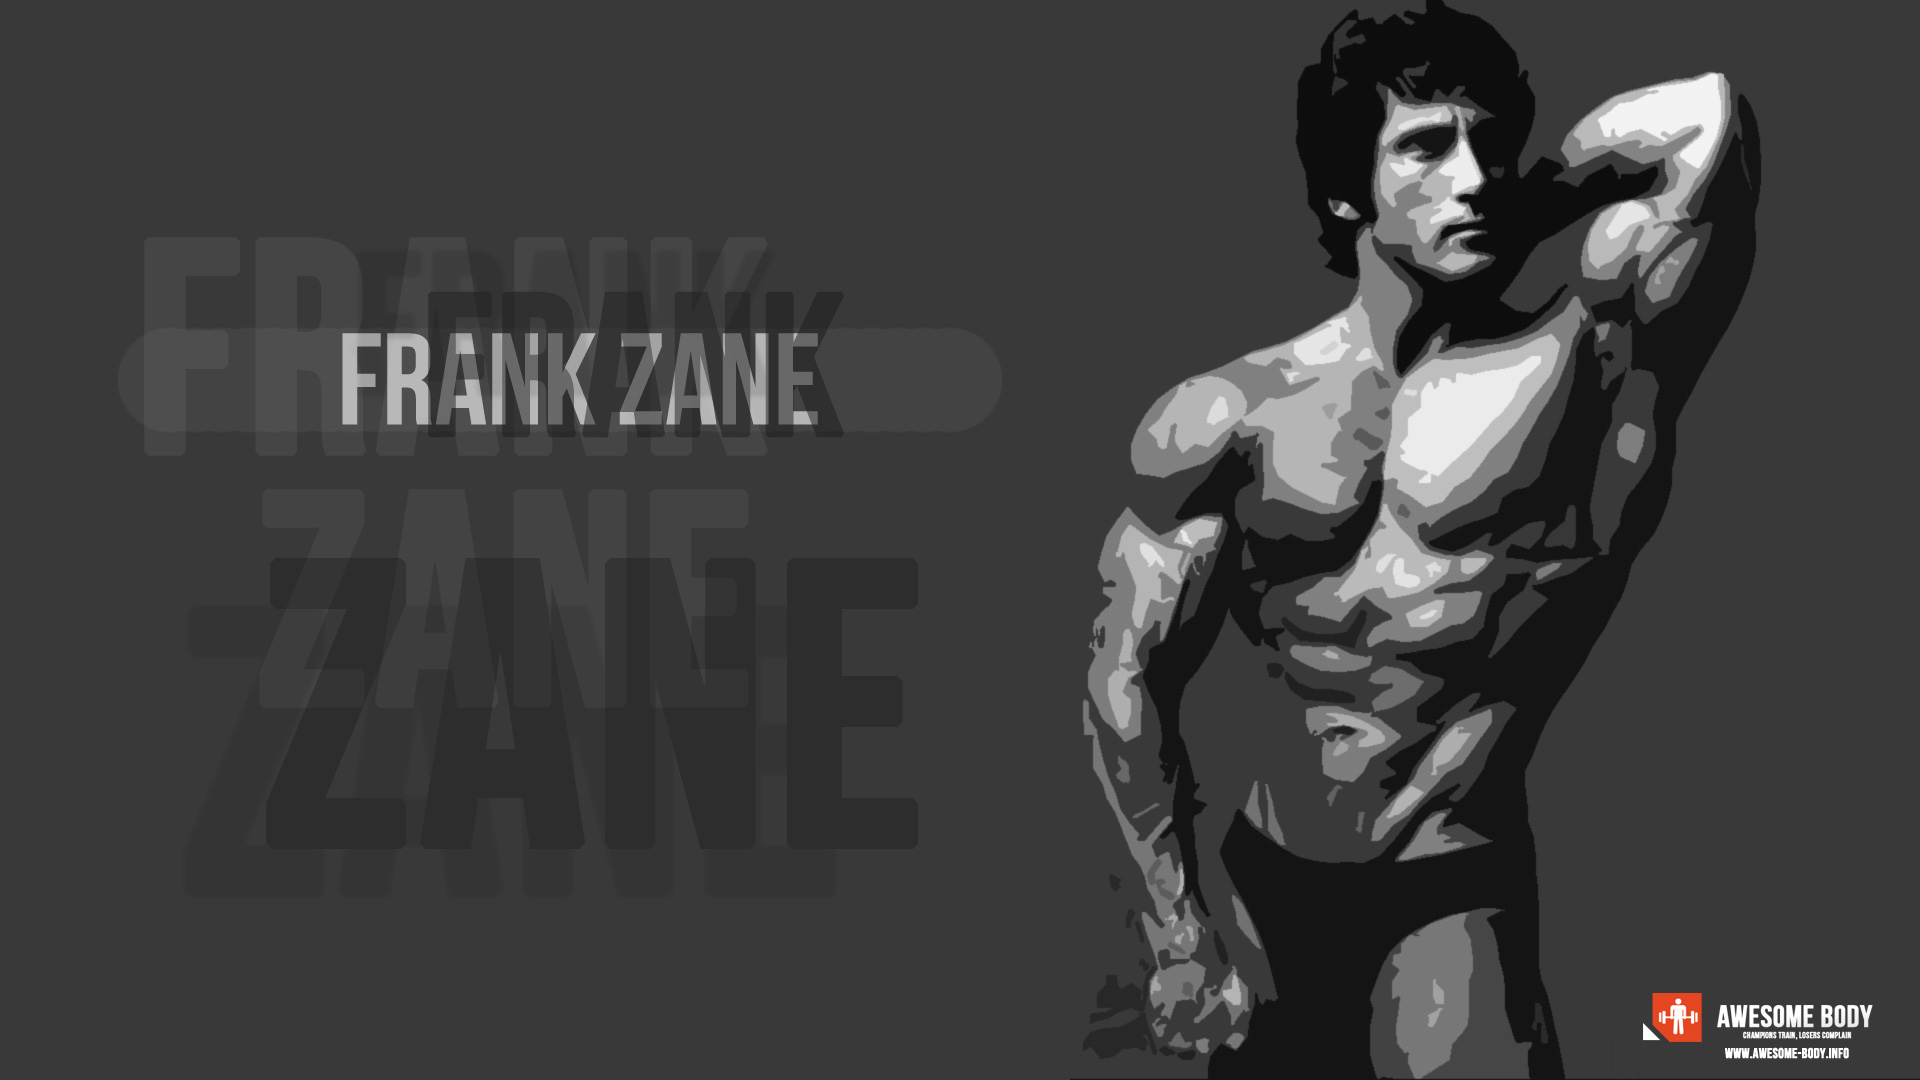 Frank Zane Poster Bodybuilding Pictures Awesome Body 1920x1080